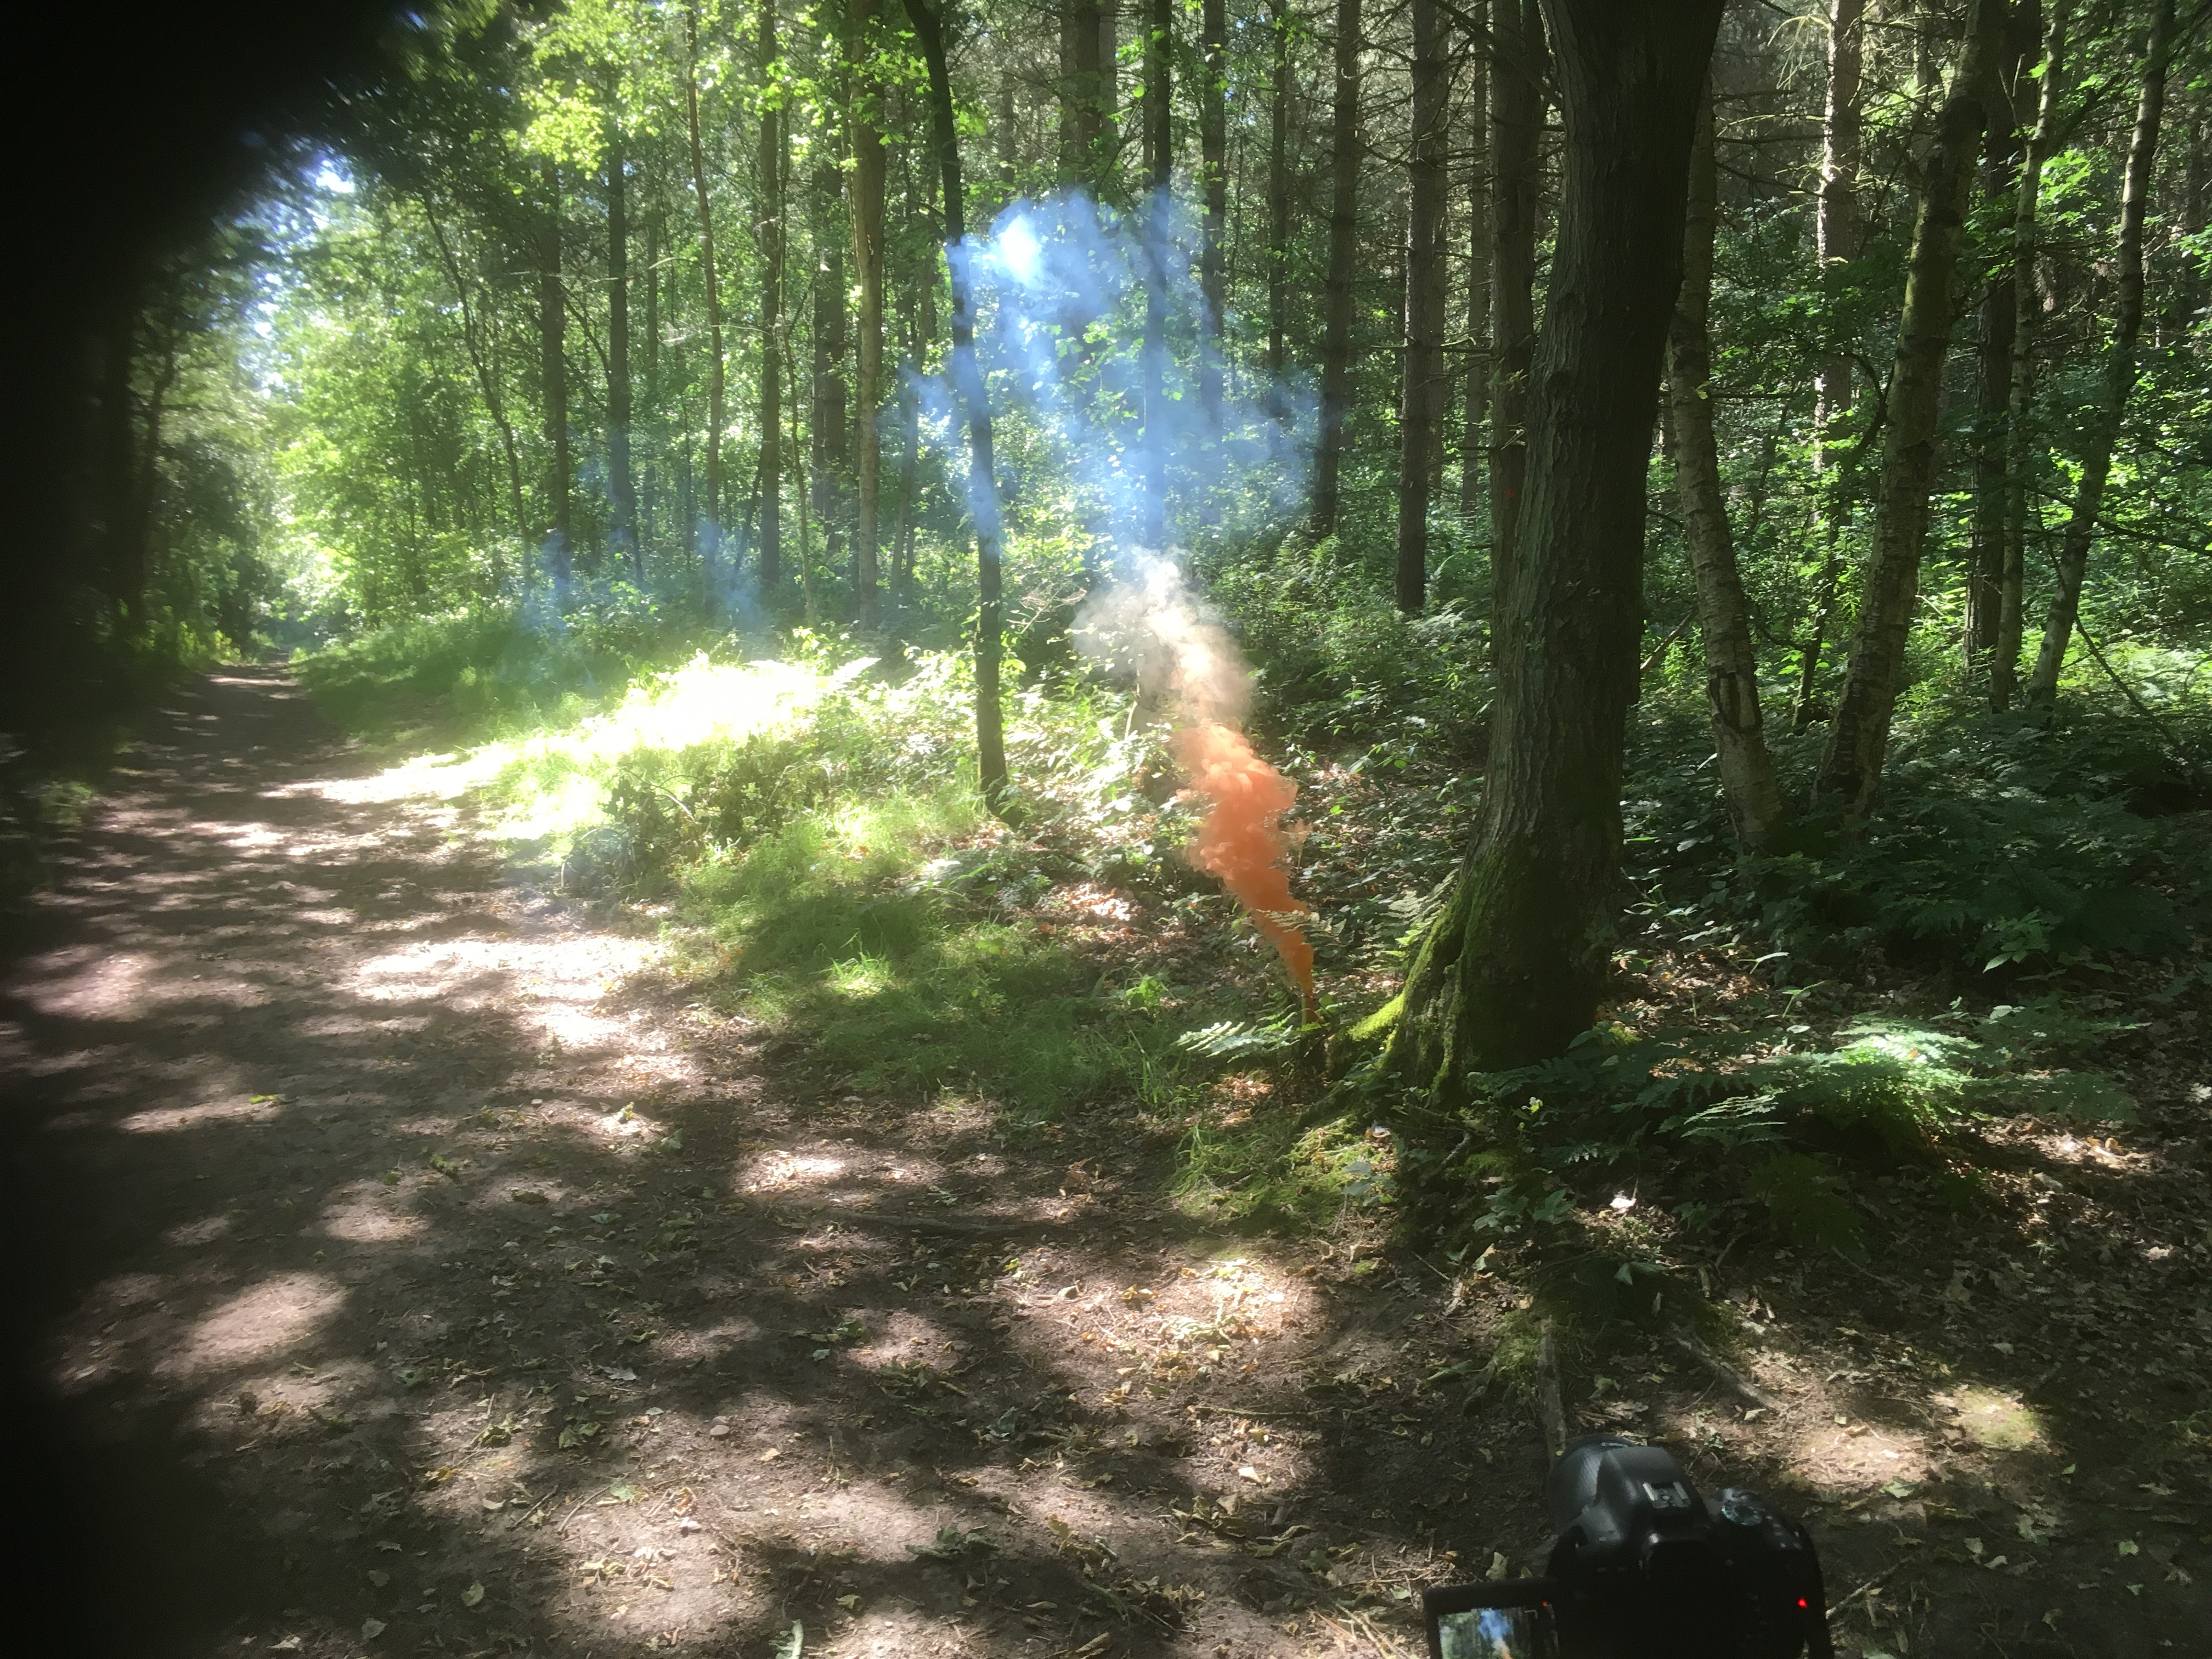 orange and blue smoke rising by the path